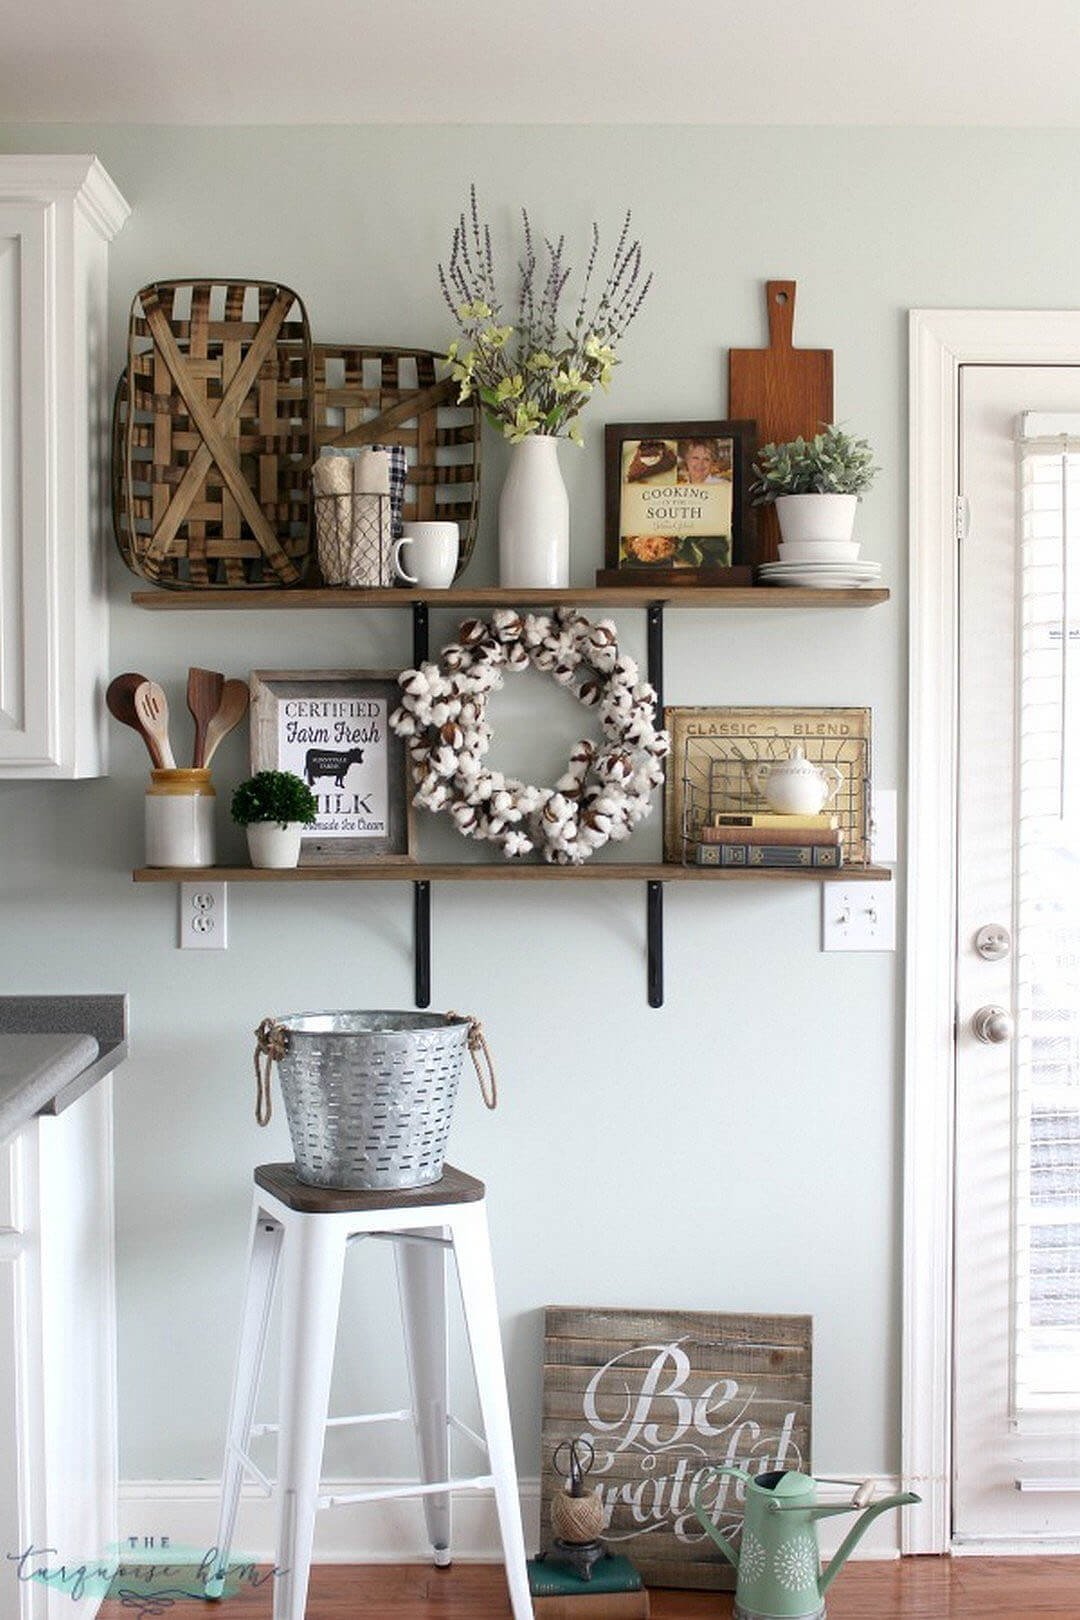 kitchen wall hangings renovation 36 best decor ideas and designs for 2019 rustic farmhouse shelf display